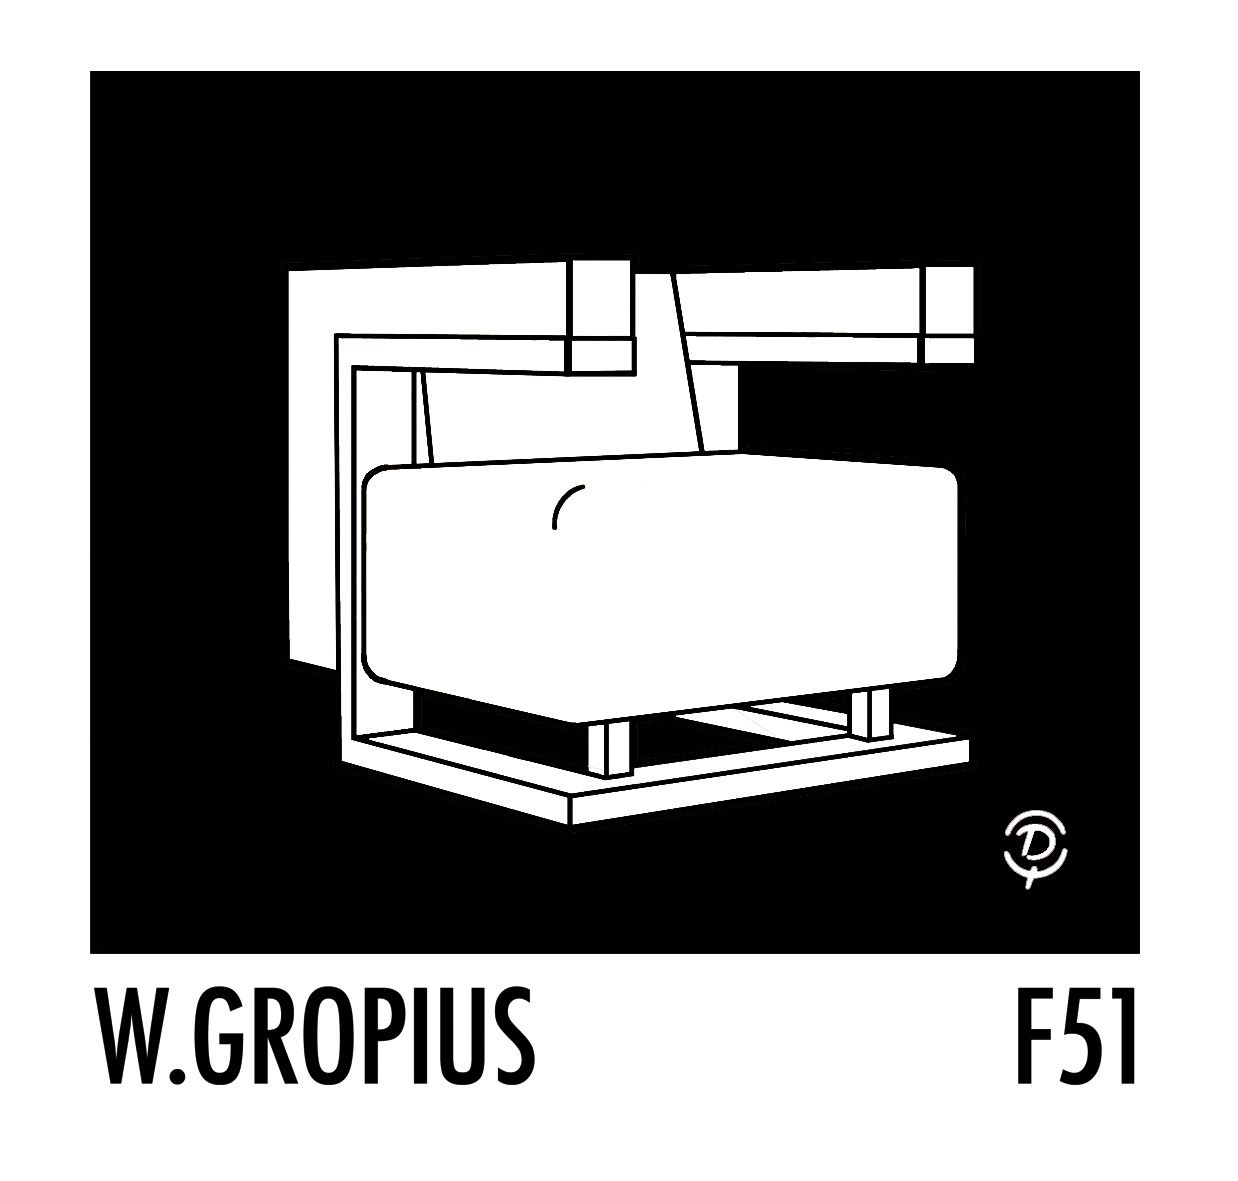 bauhaus f51 par walter gropius delius. Black Bedroom Furniture Sets. Home Design Ideas